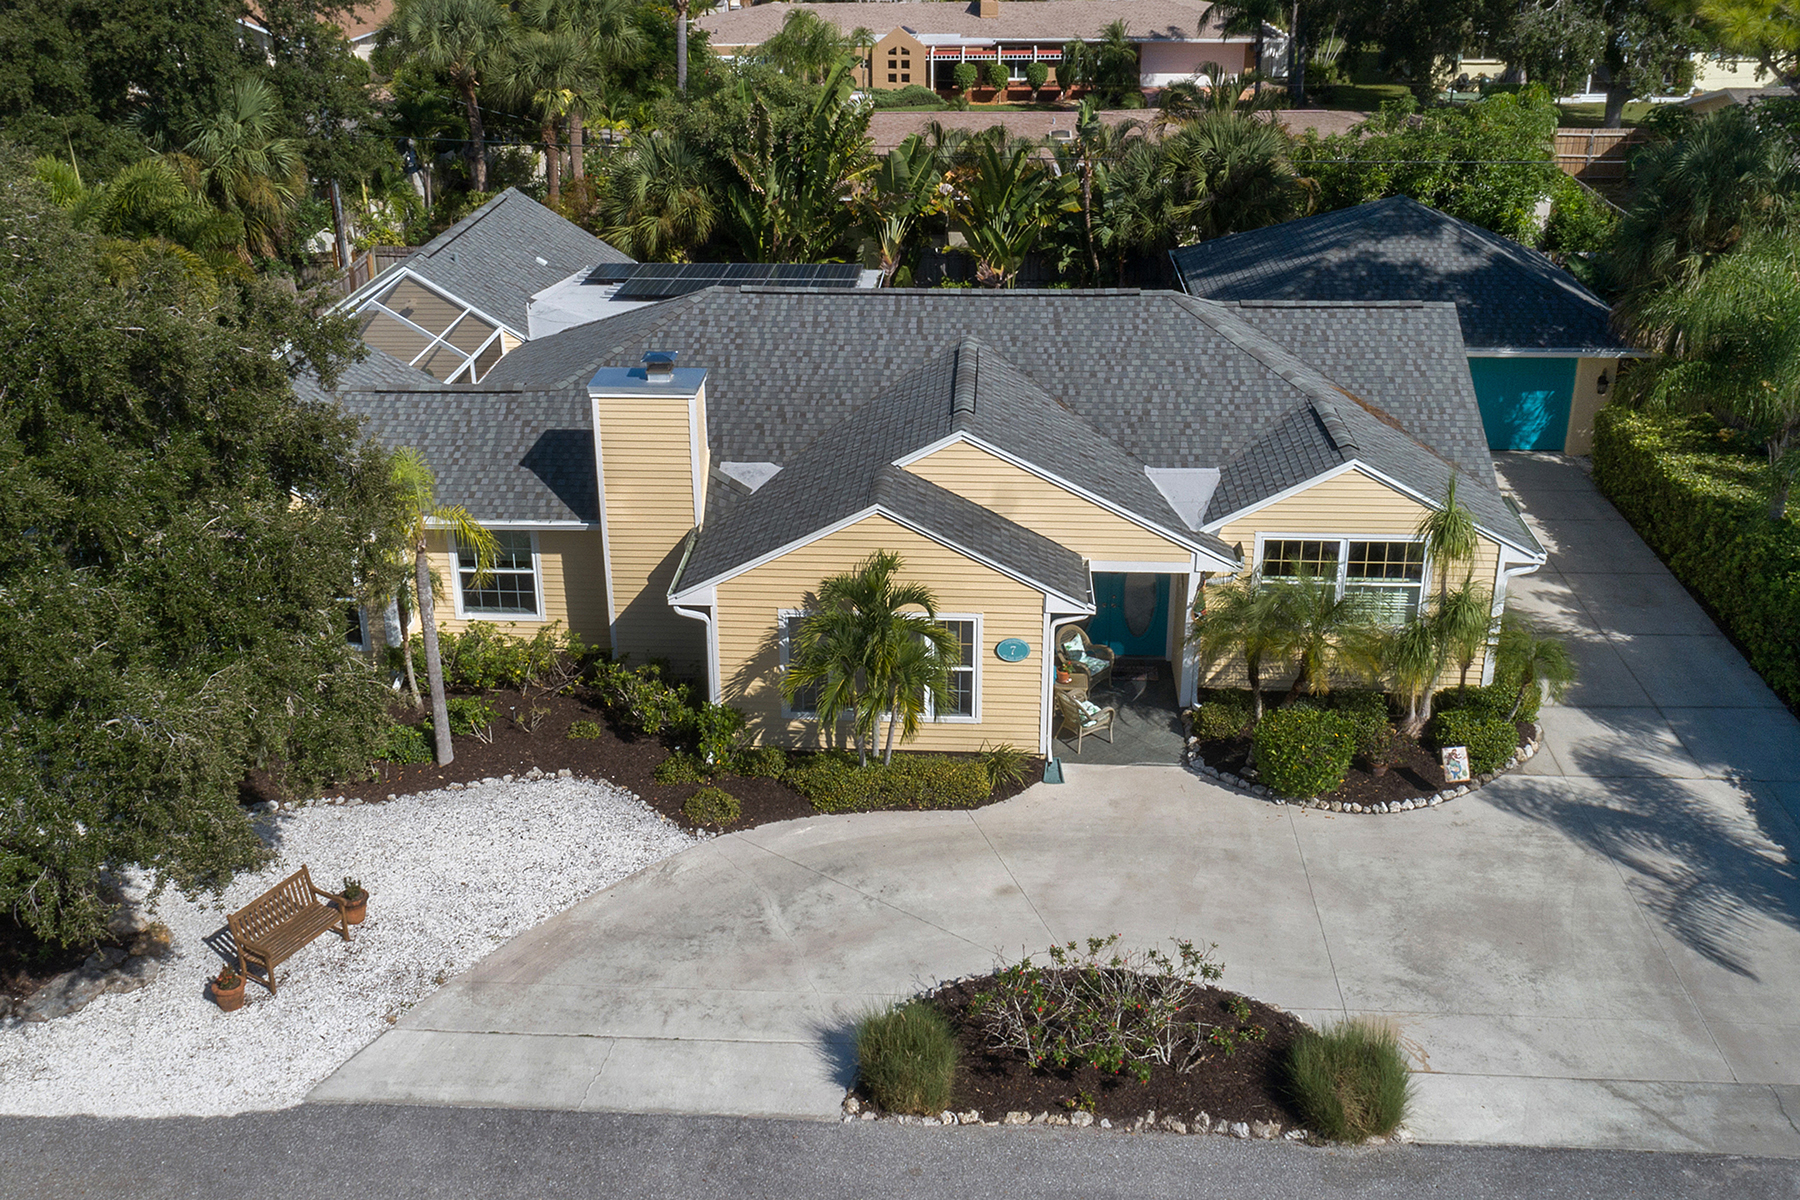 Single Family Homes for Sale at CORNWELL ON THE GULF - VENICE ISLAND 7 Cornwell On The Gulf, Venice, Florida 34285 United States